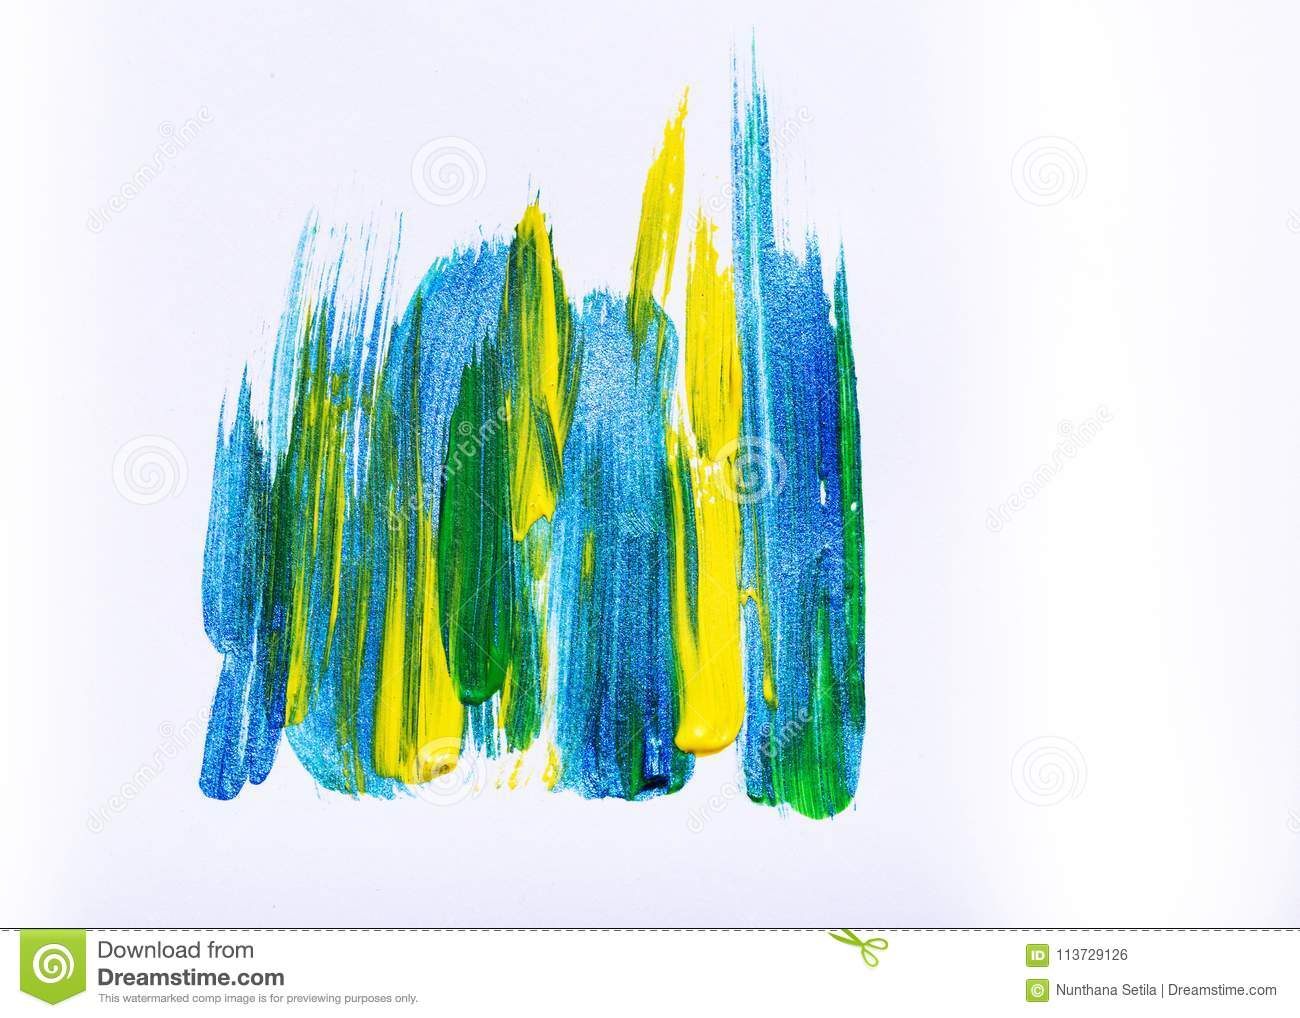 Abstract hand drawn acrylic painting creative art background.Closeup shot of brushstrokes colorful acrylic paint on canvas with b